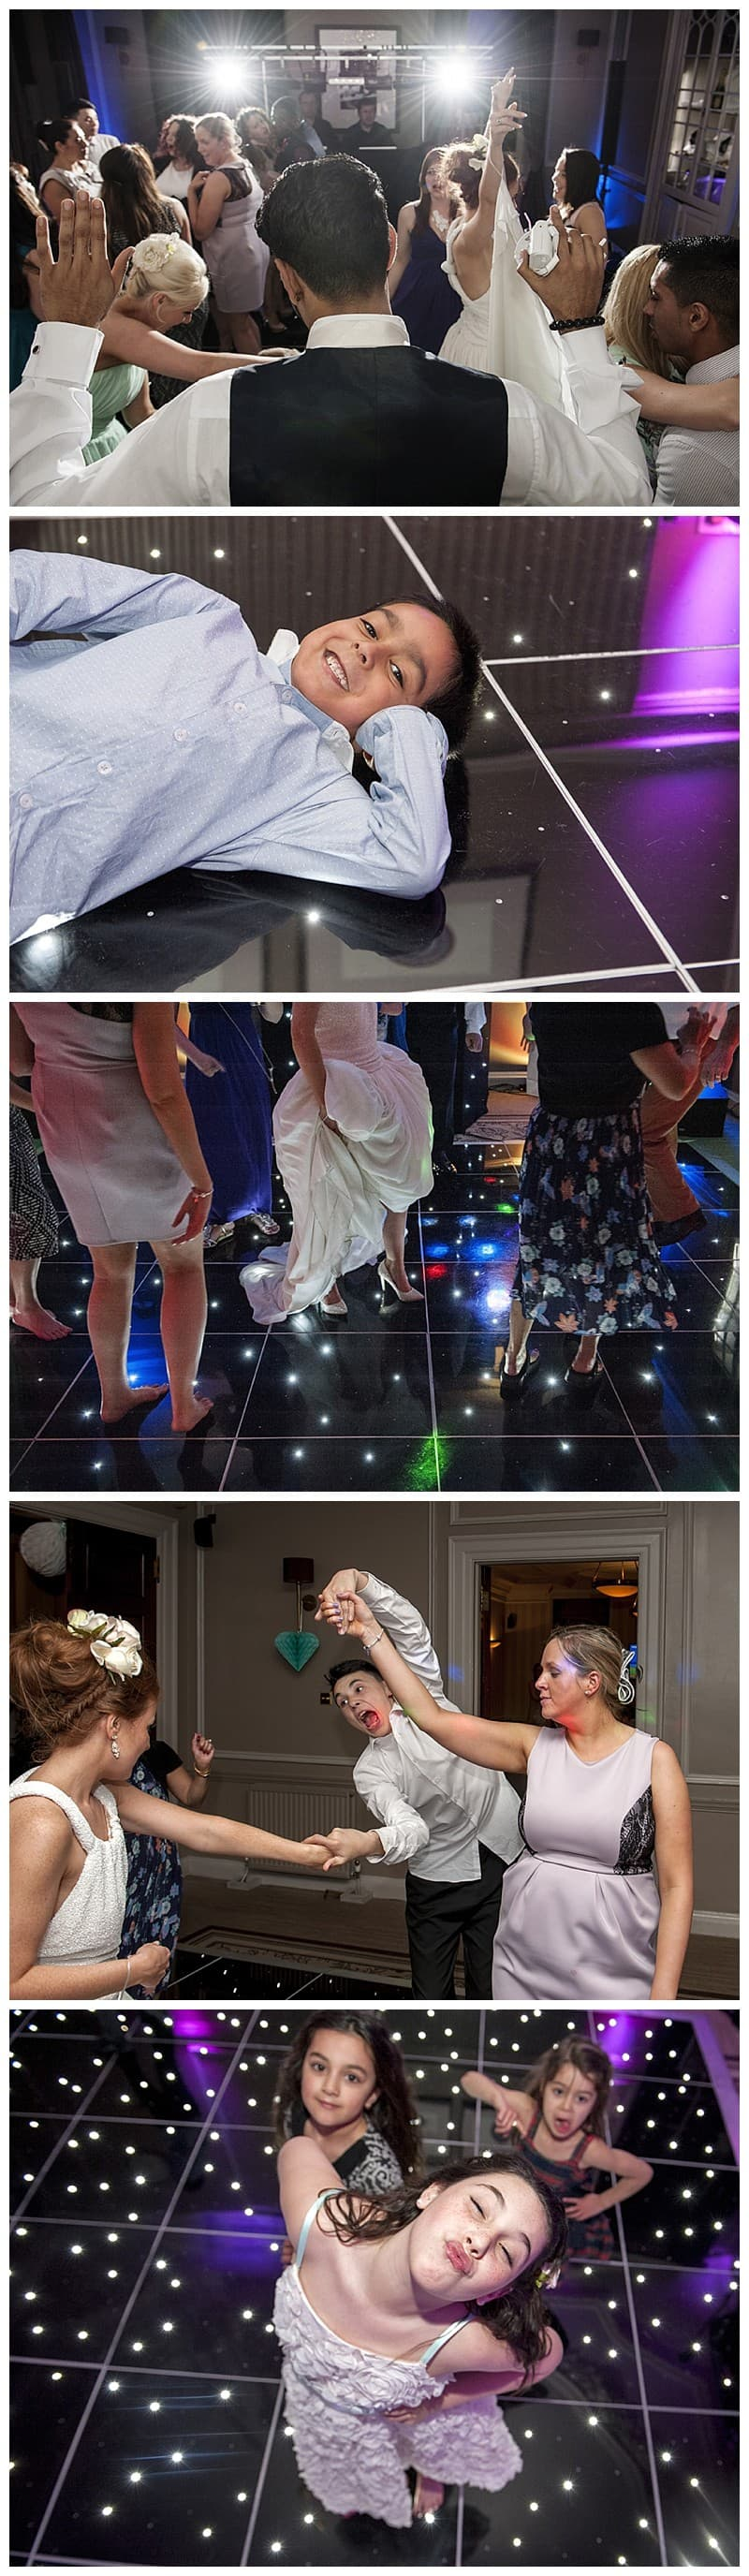 Stuart & Hayley De Vere's Hotel, Surrey Wedding, Benjamin Wetherall Photography | London Wedding Photography0031.1